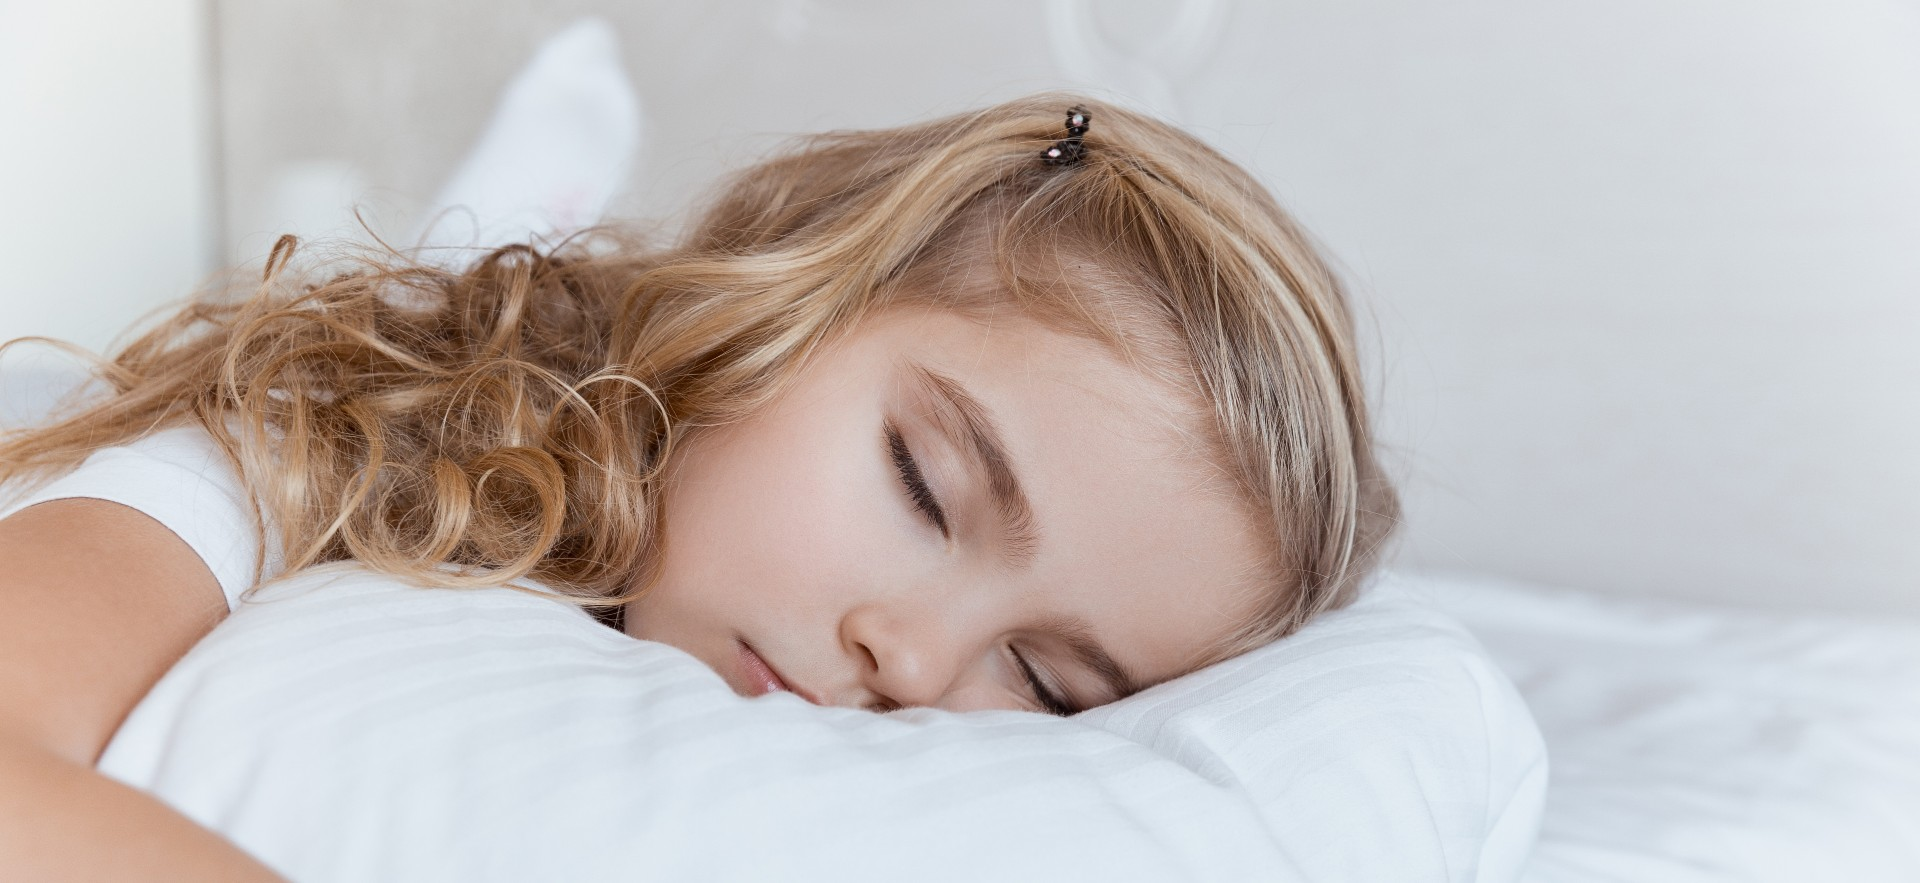 Young girl sleeping on a white pillow at home